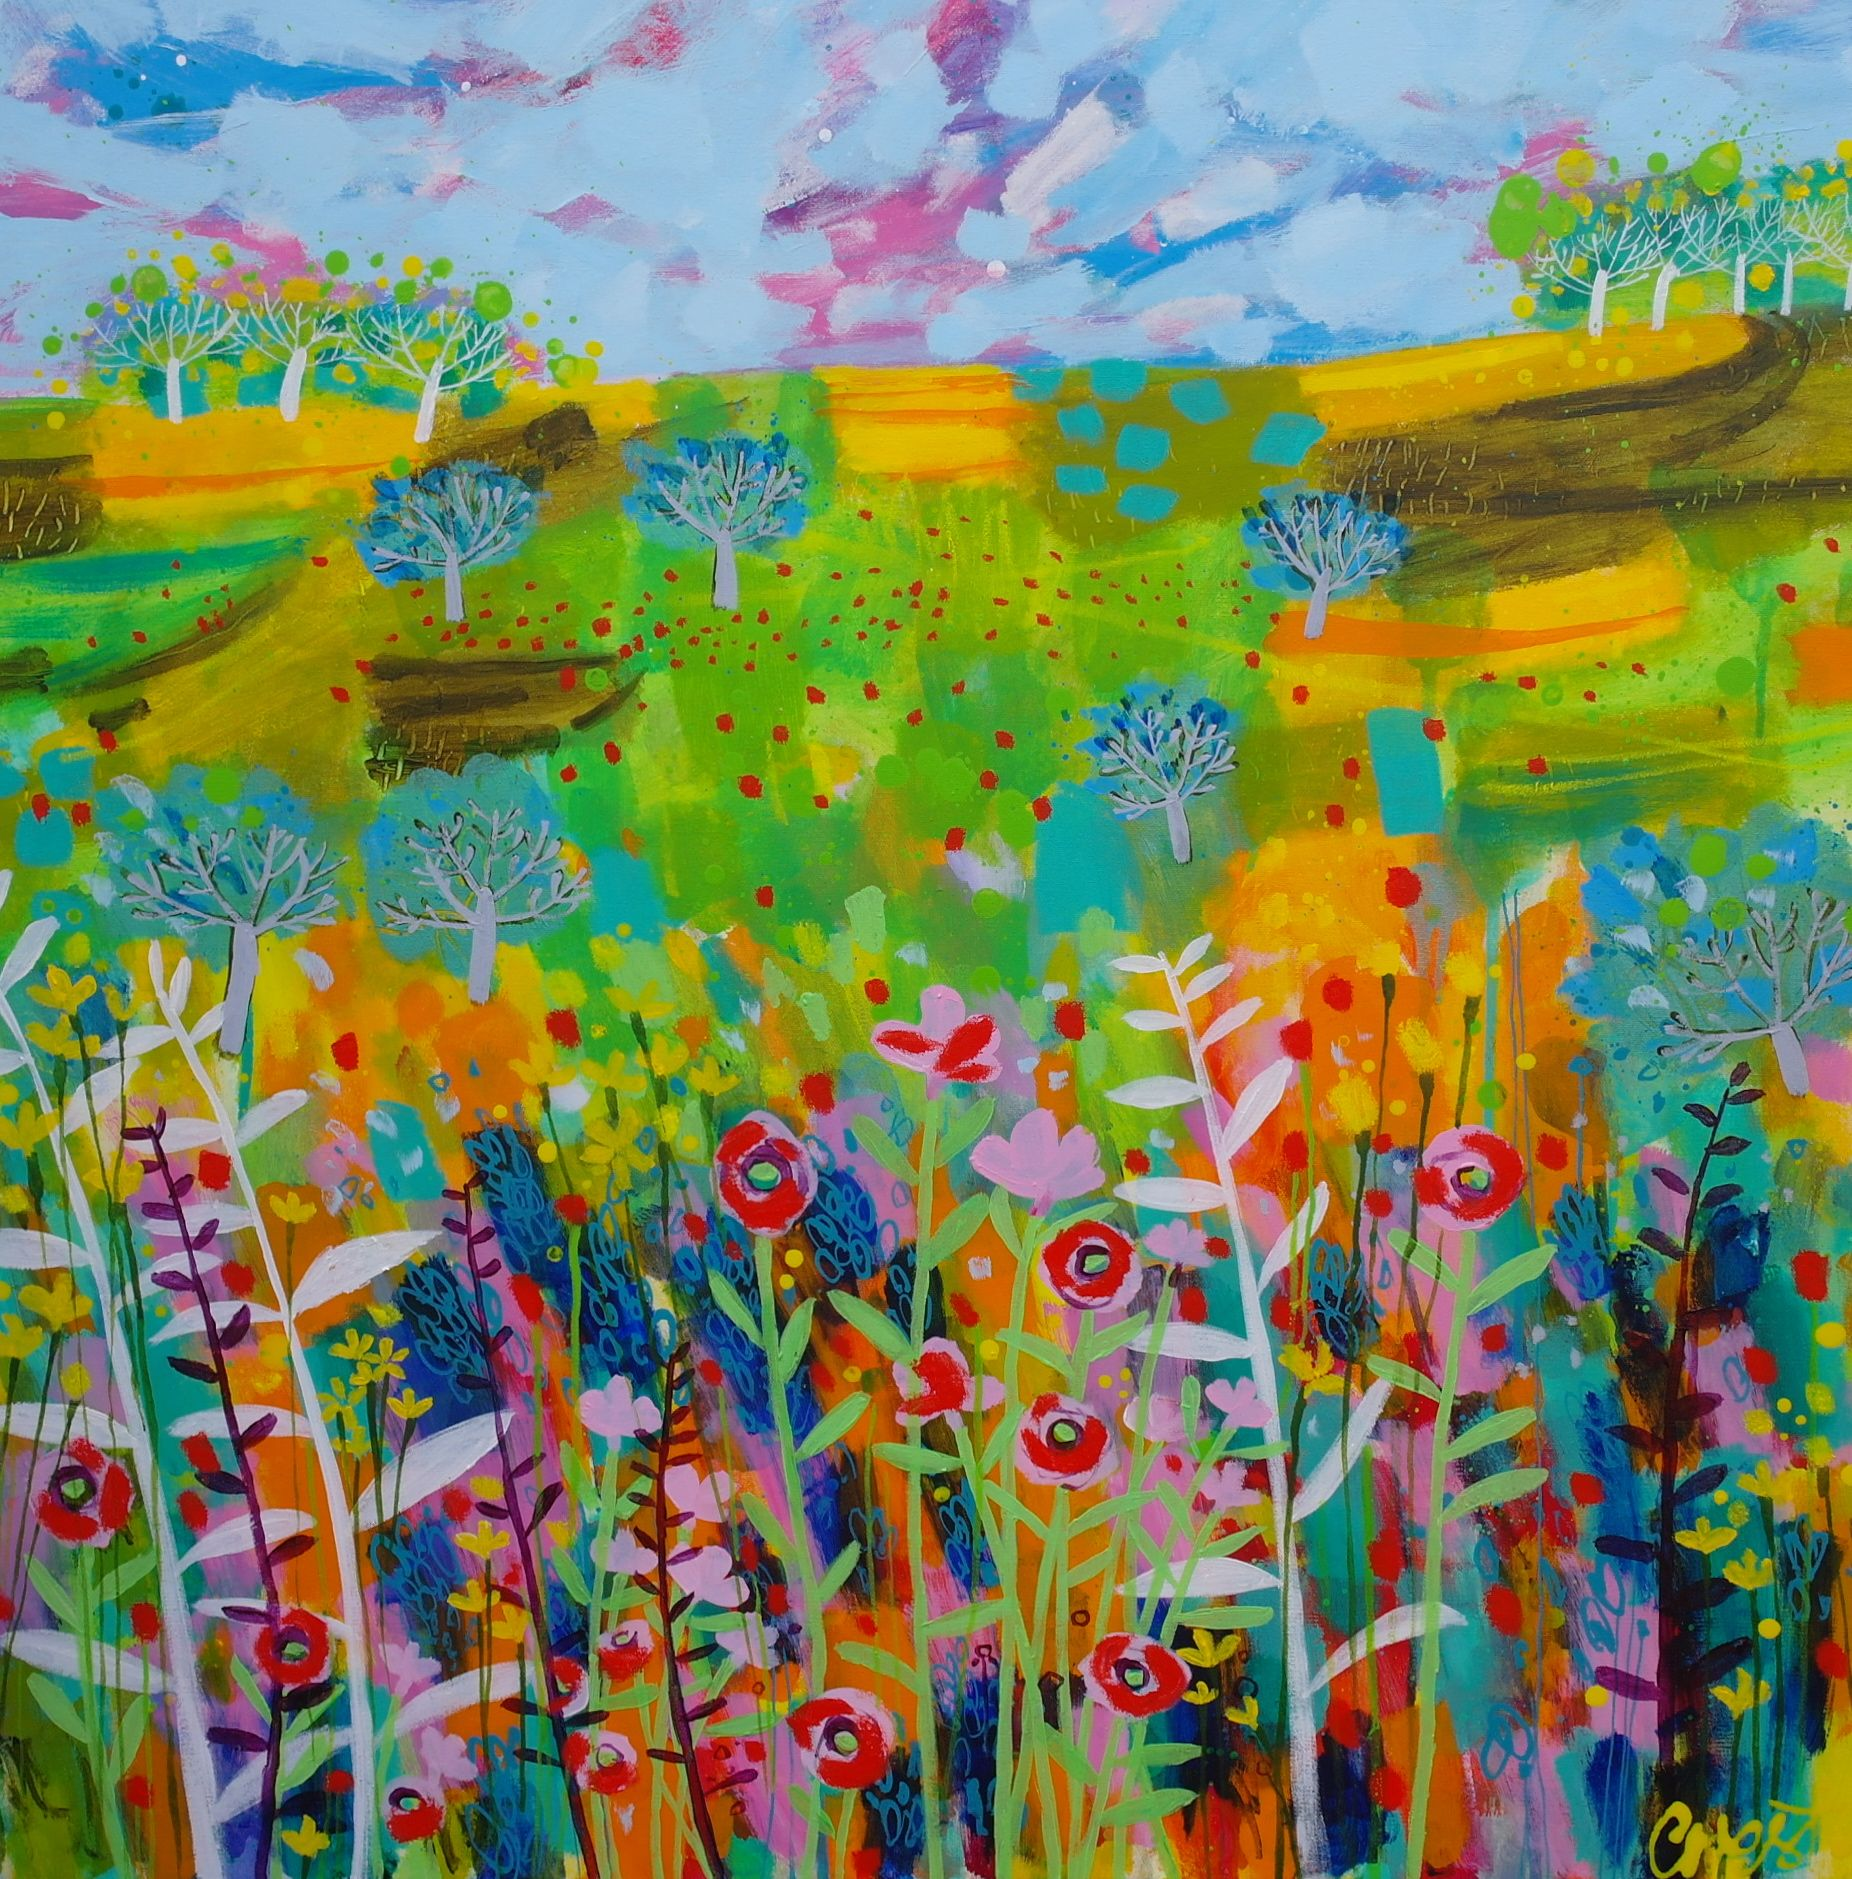 Beautiful Day by Claire West  at claire-west.com  available at Itch Gallery, Oakham